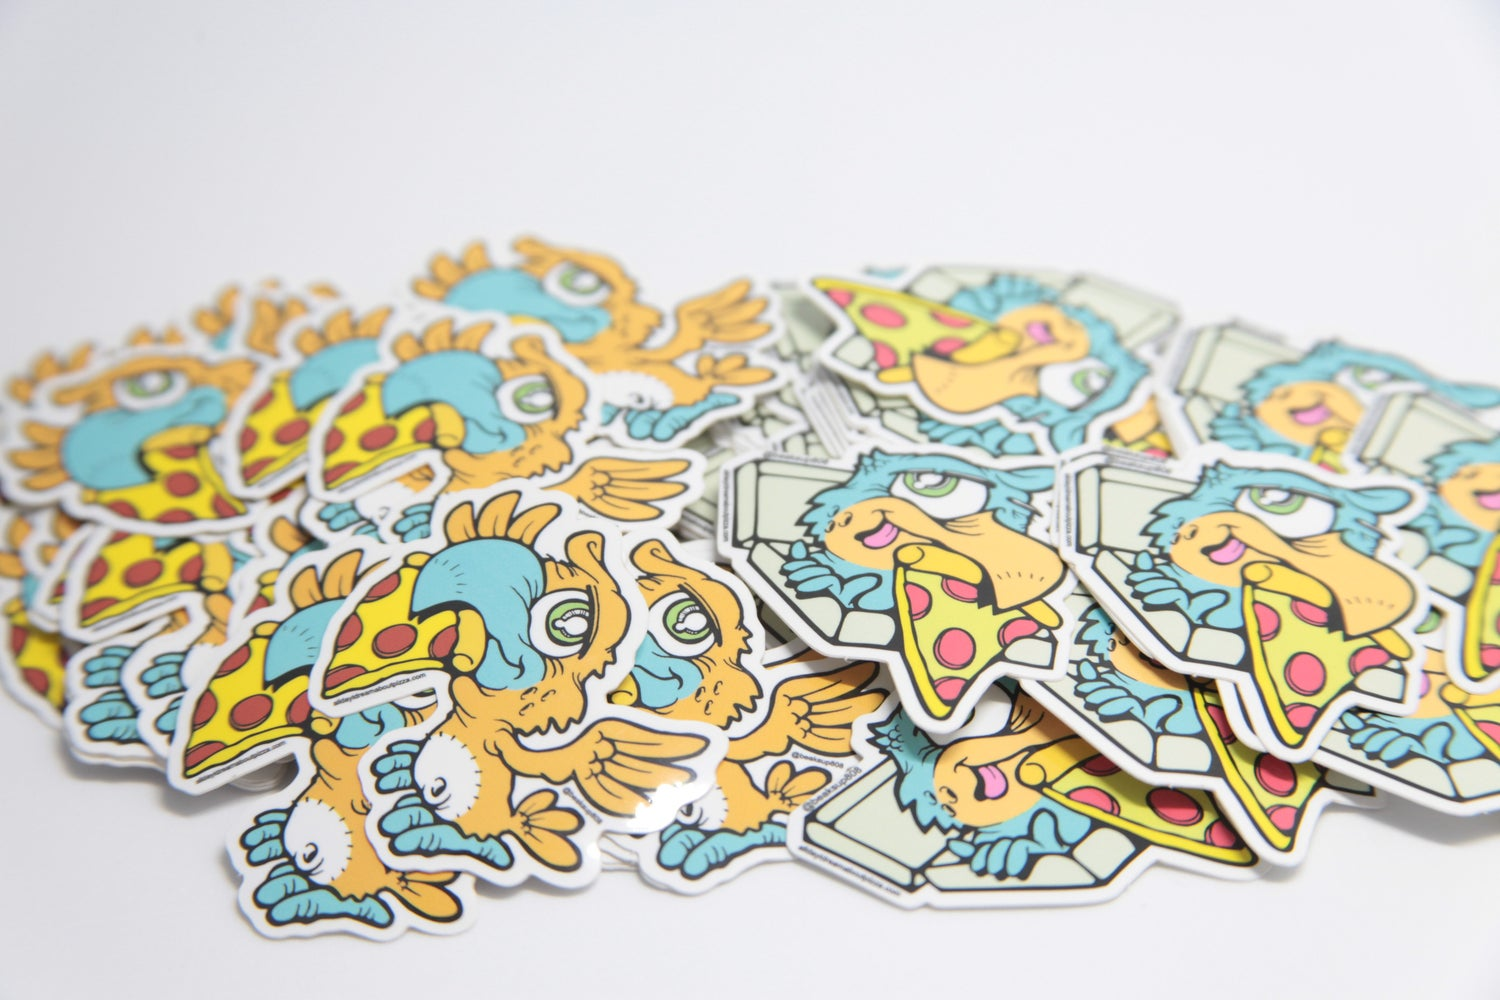 Image of B3ak03 colab Sticker Pack